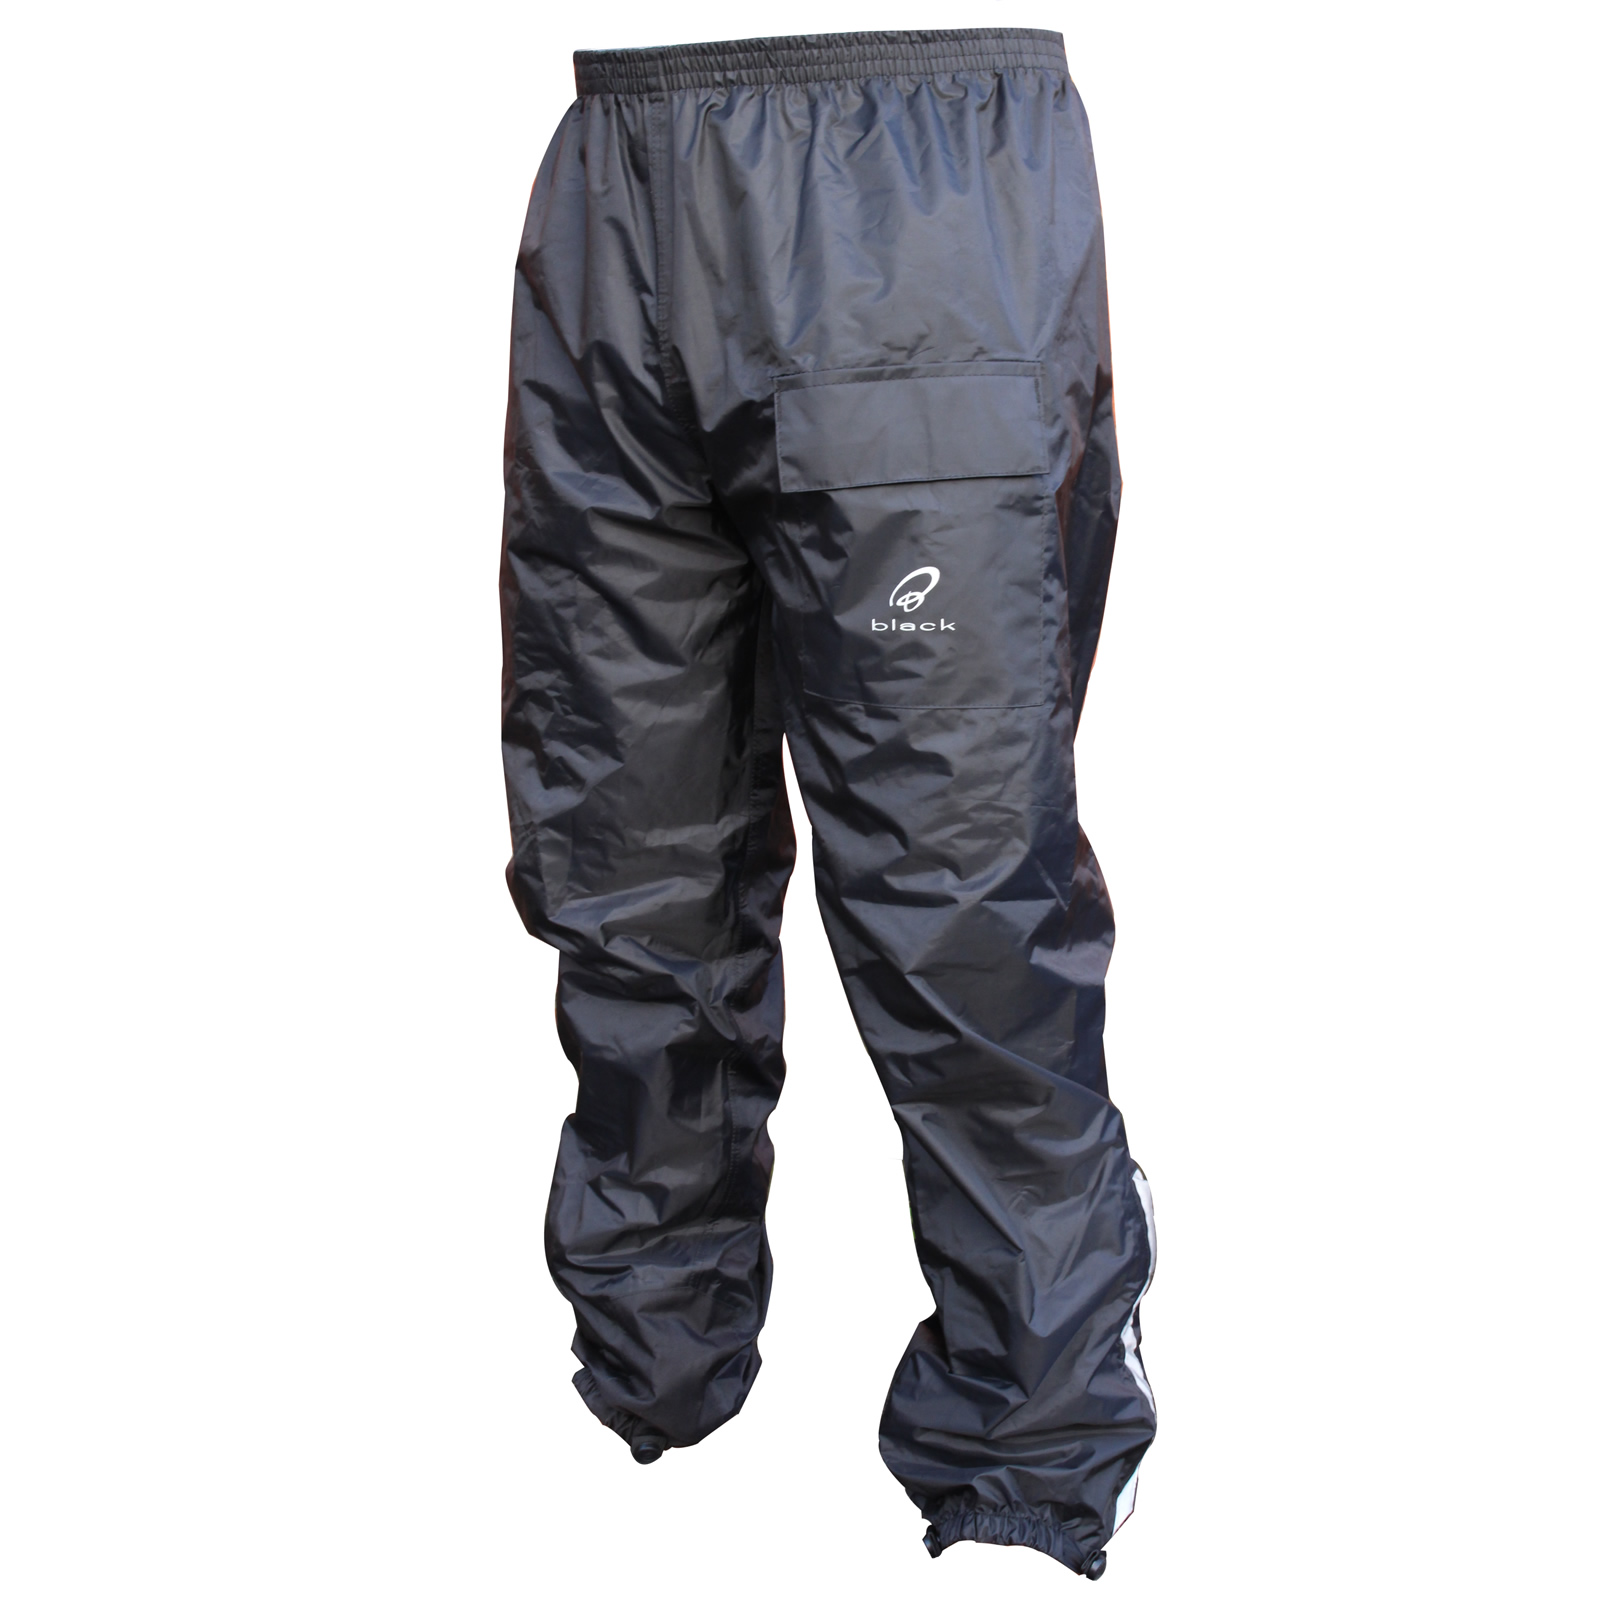 black flare tanche pantalon de moto scooter impermiable textile surpantalon ebay. Black Bedroom Furniture Sets. Home Design Ideas